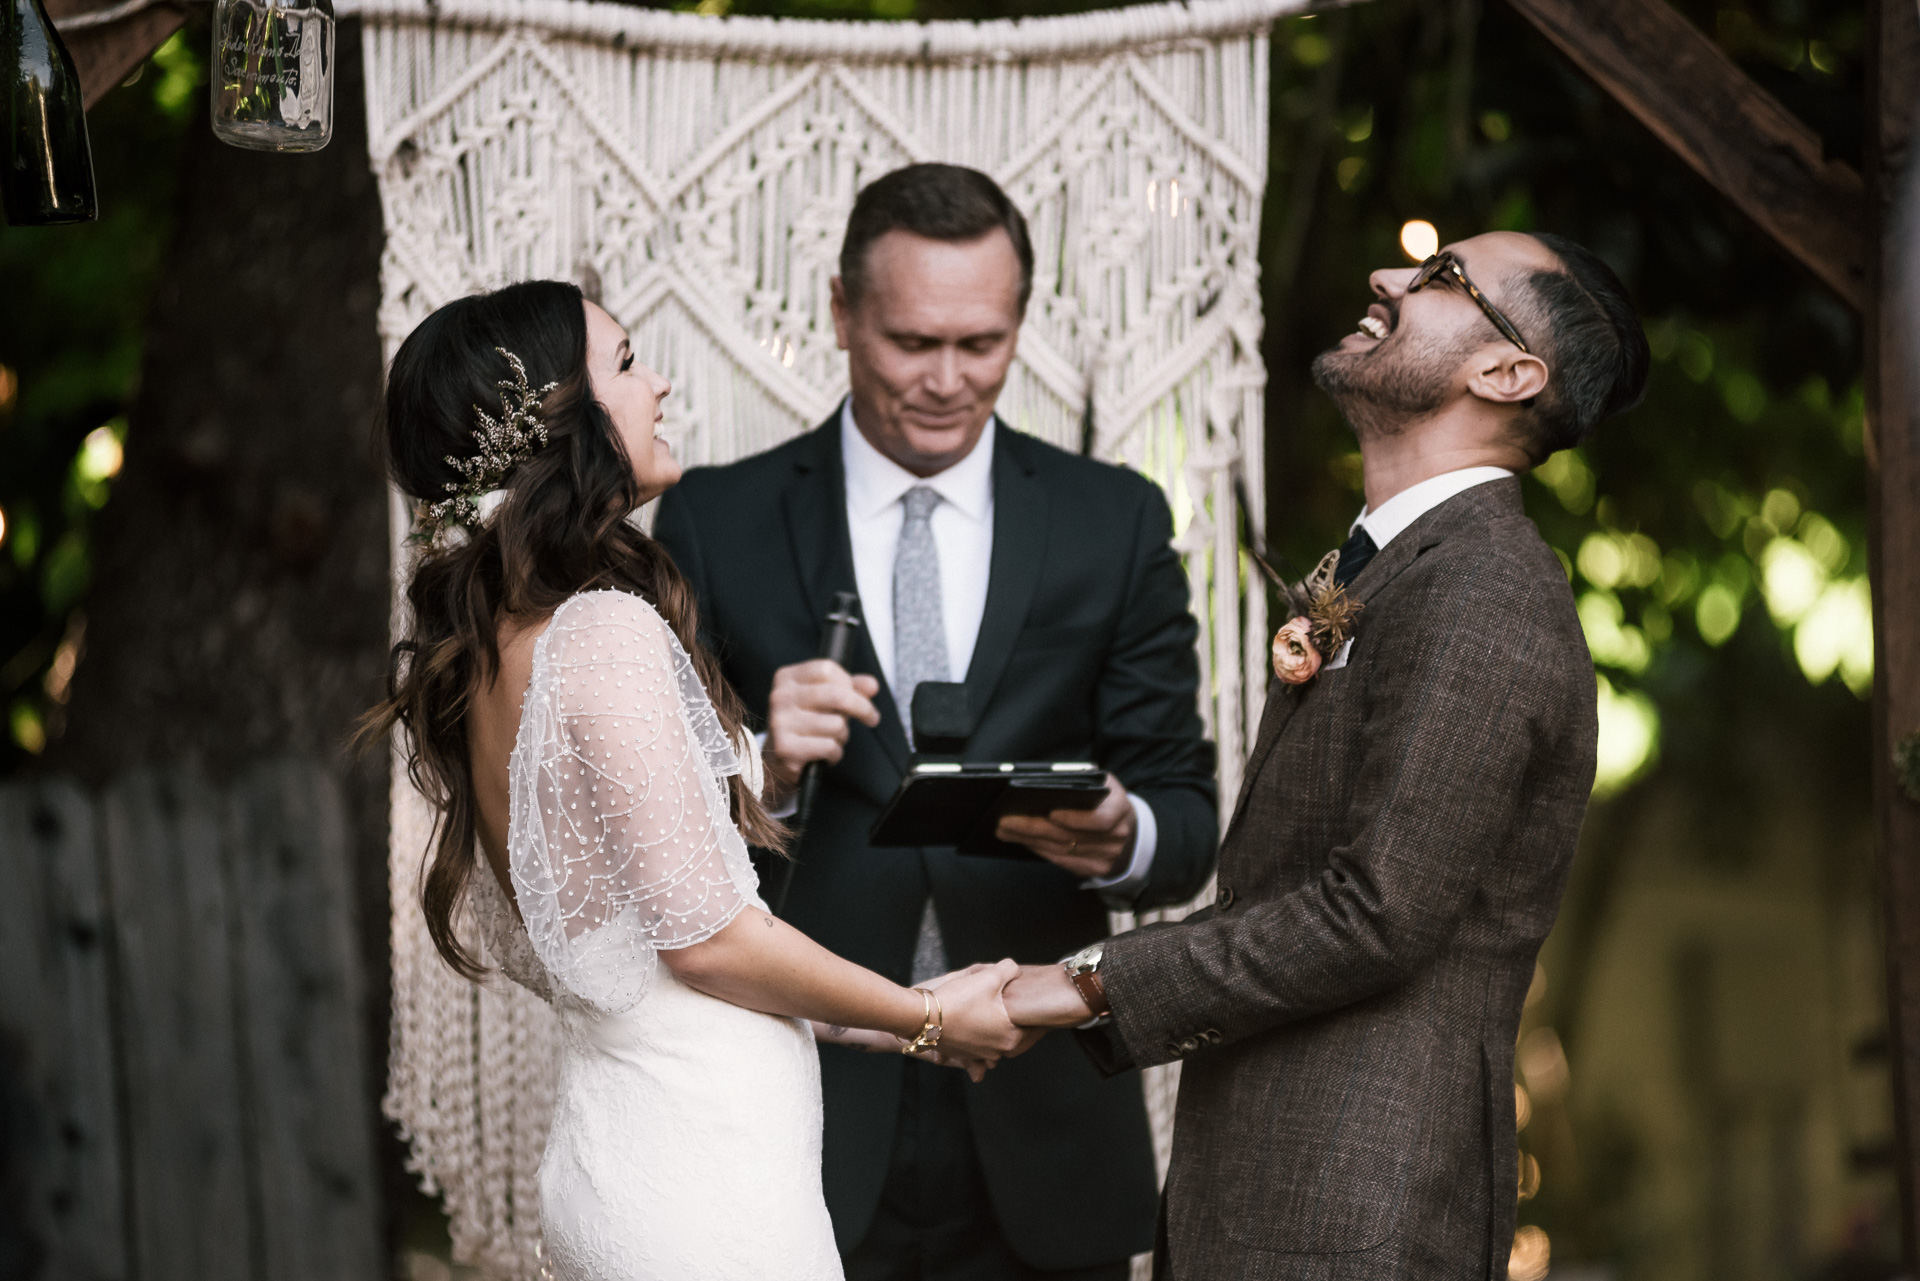 couple shares a big laugh during their ceremony shot by wedding photographer at the charming St. George Hotel in Volcano California